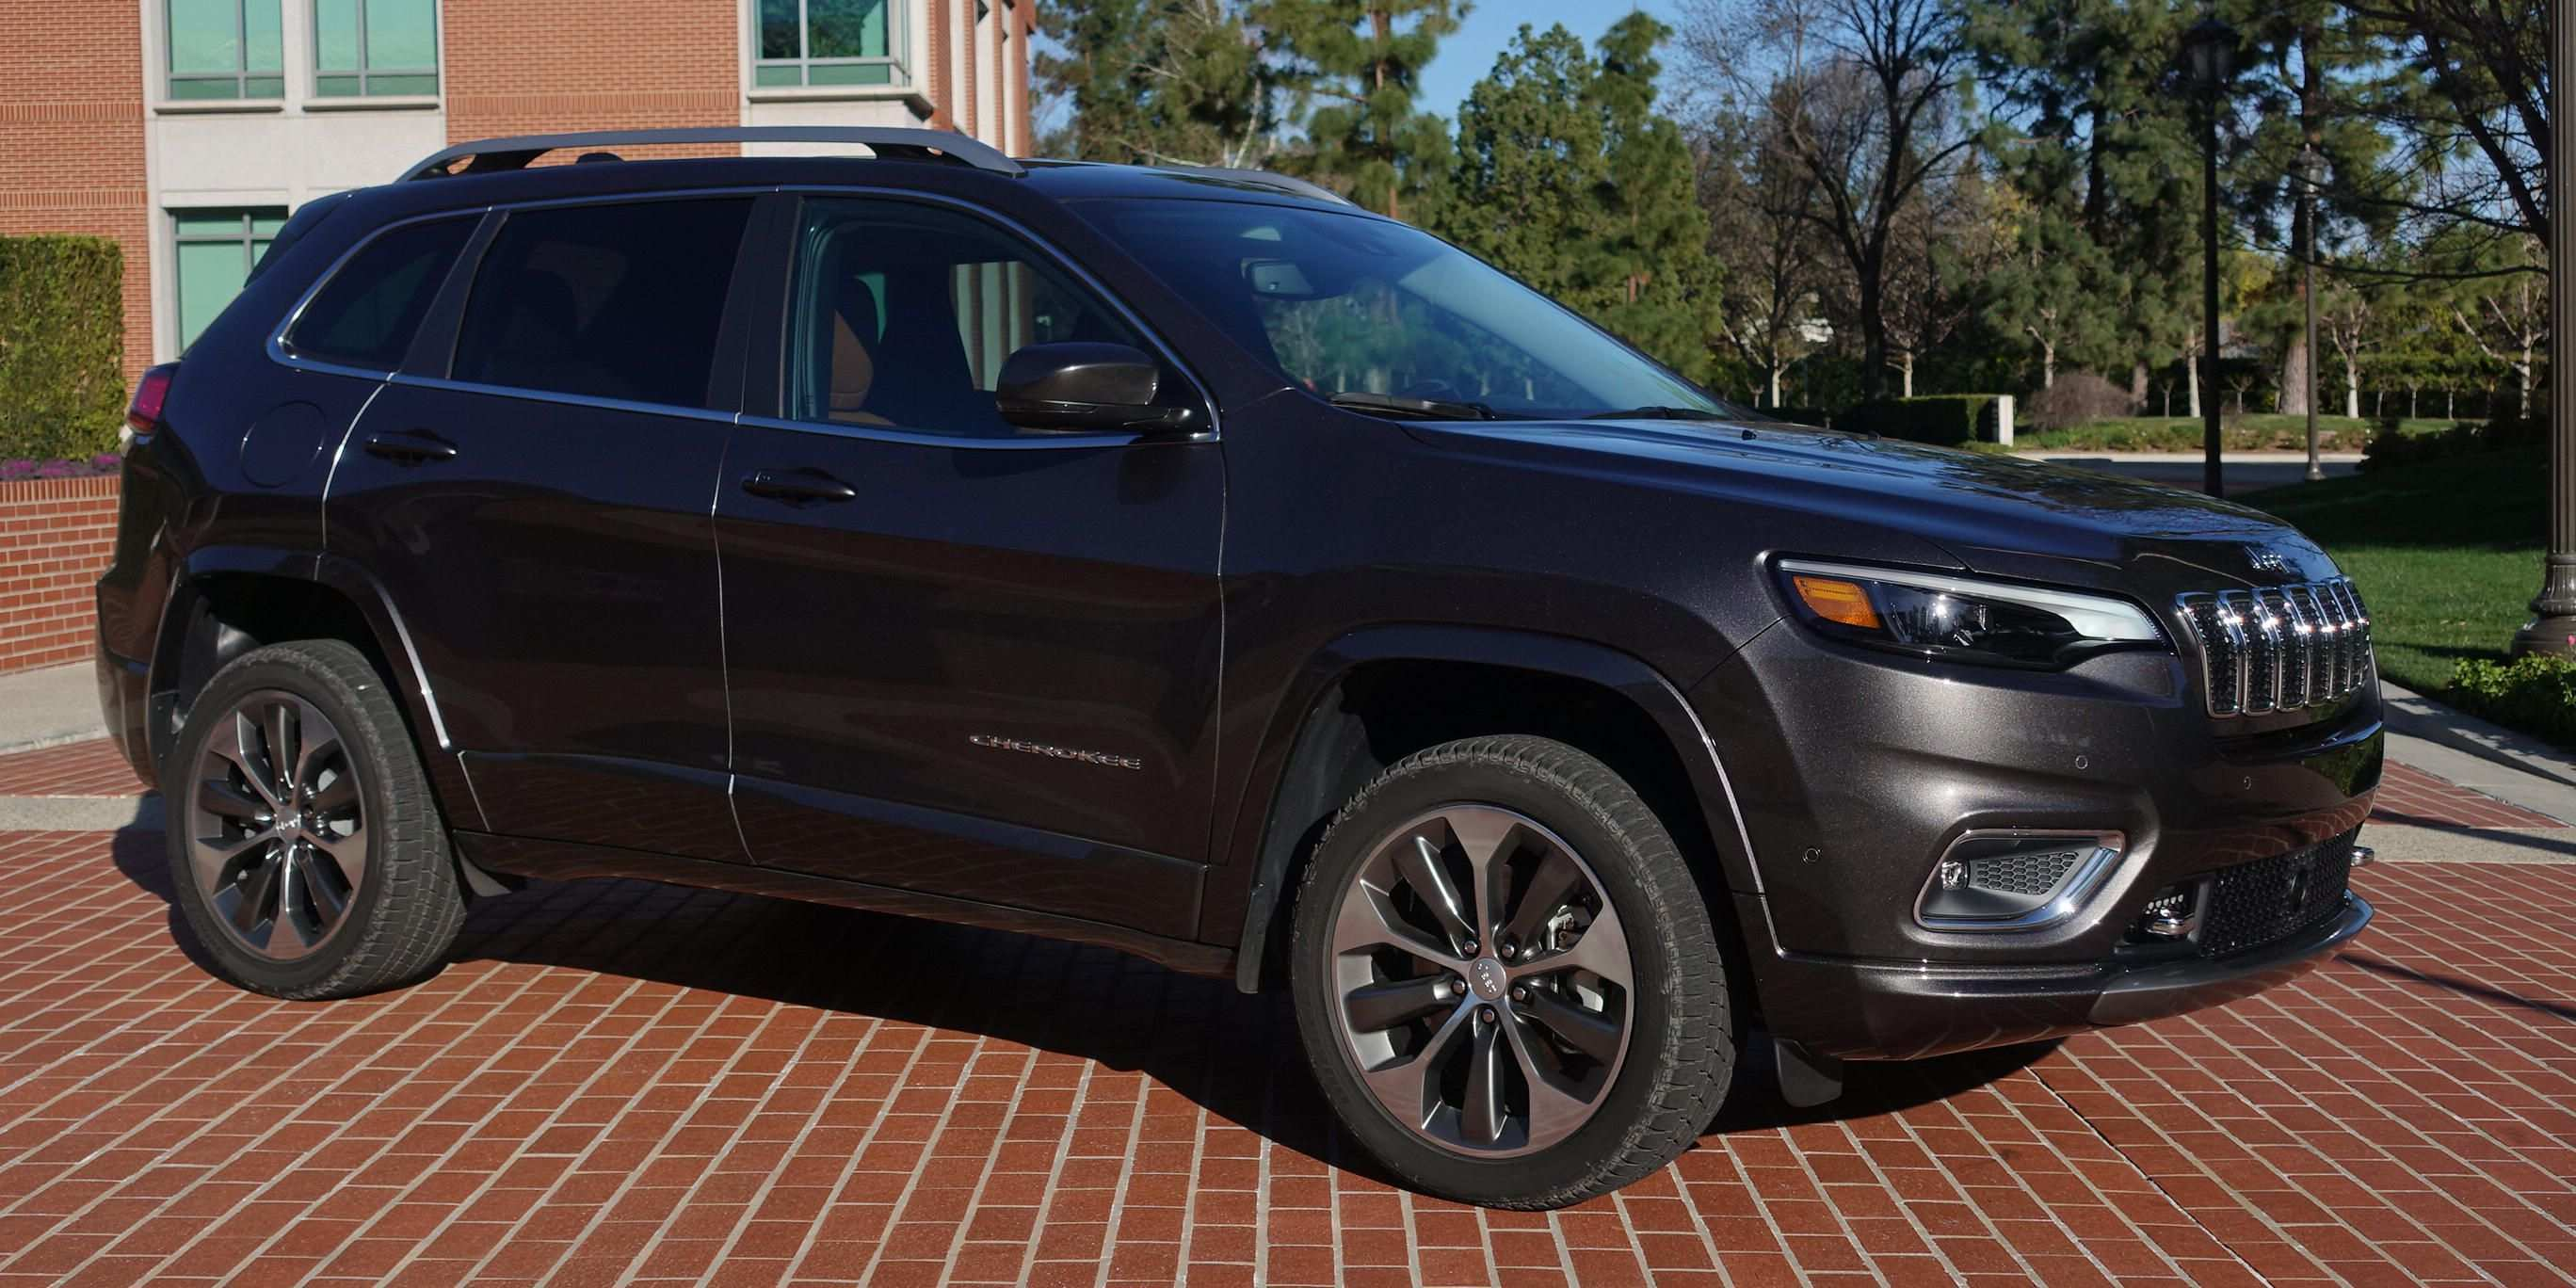 33 Great 2019 Jeep 2 0 Turbo Mpg Reviews by 2019 Jeep 2 0 Turbo Mpg